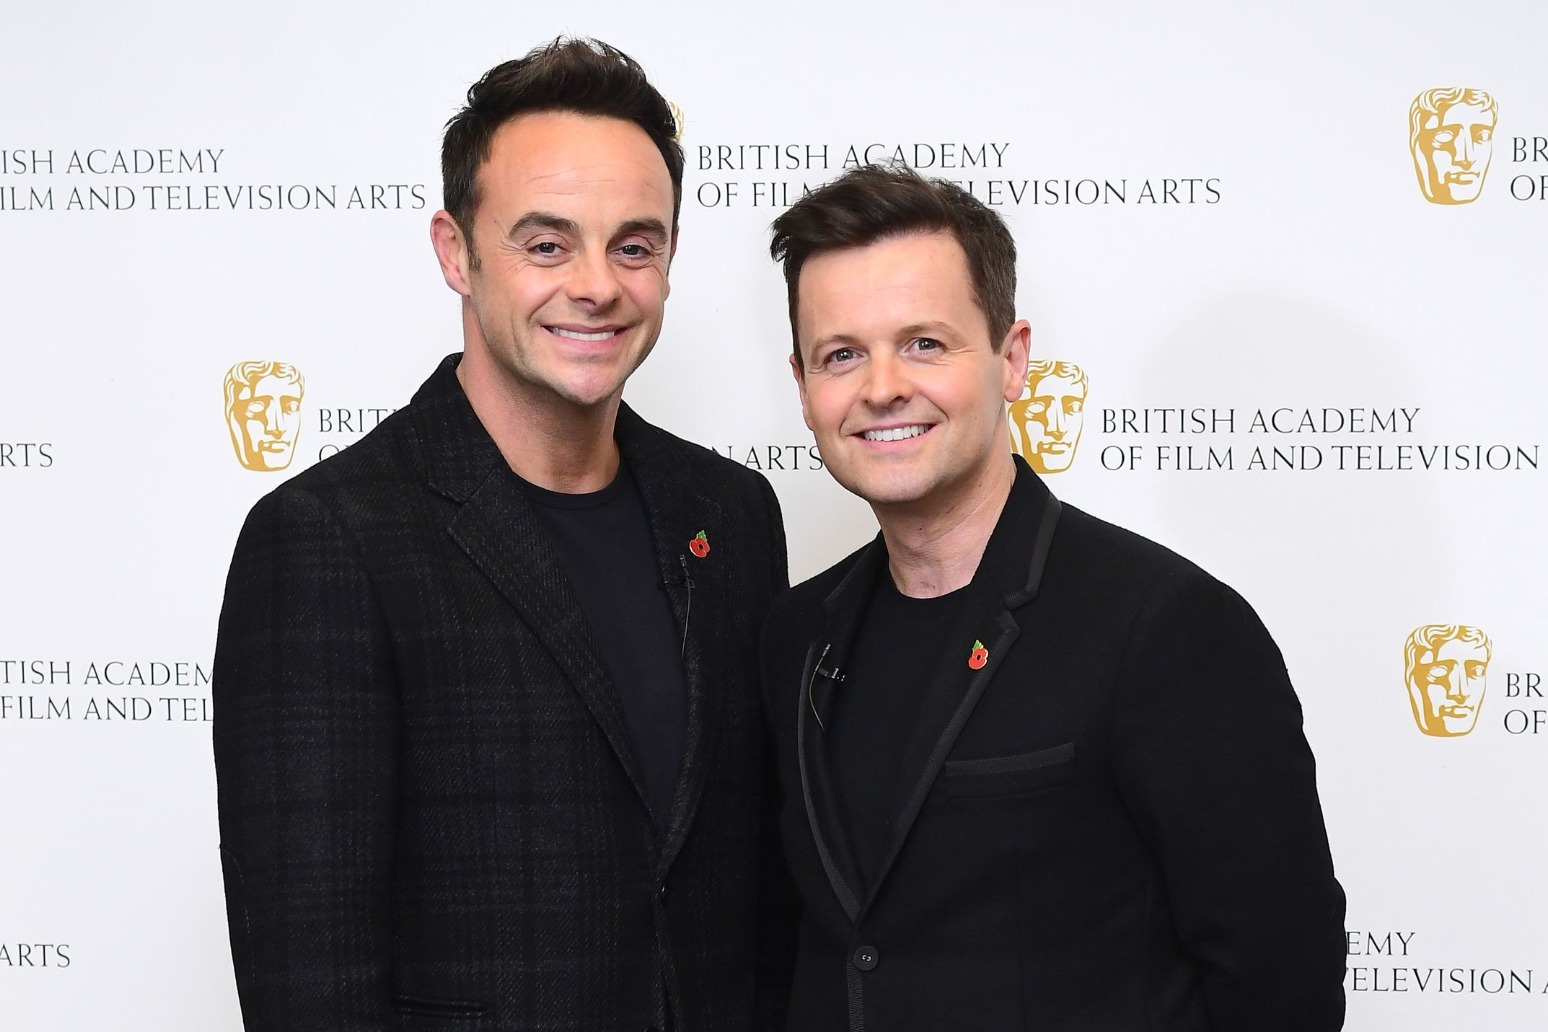 ANT MCPARTLIN: I THOUGHT THE PUBLIC HAD HAD ENOUGH OF ME